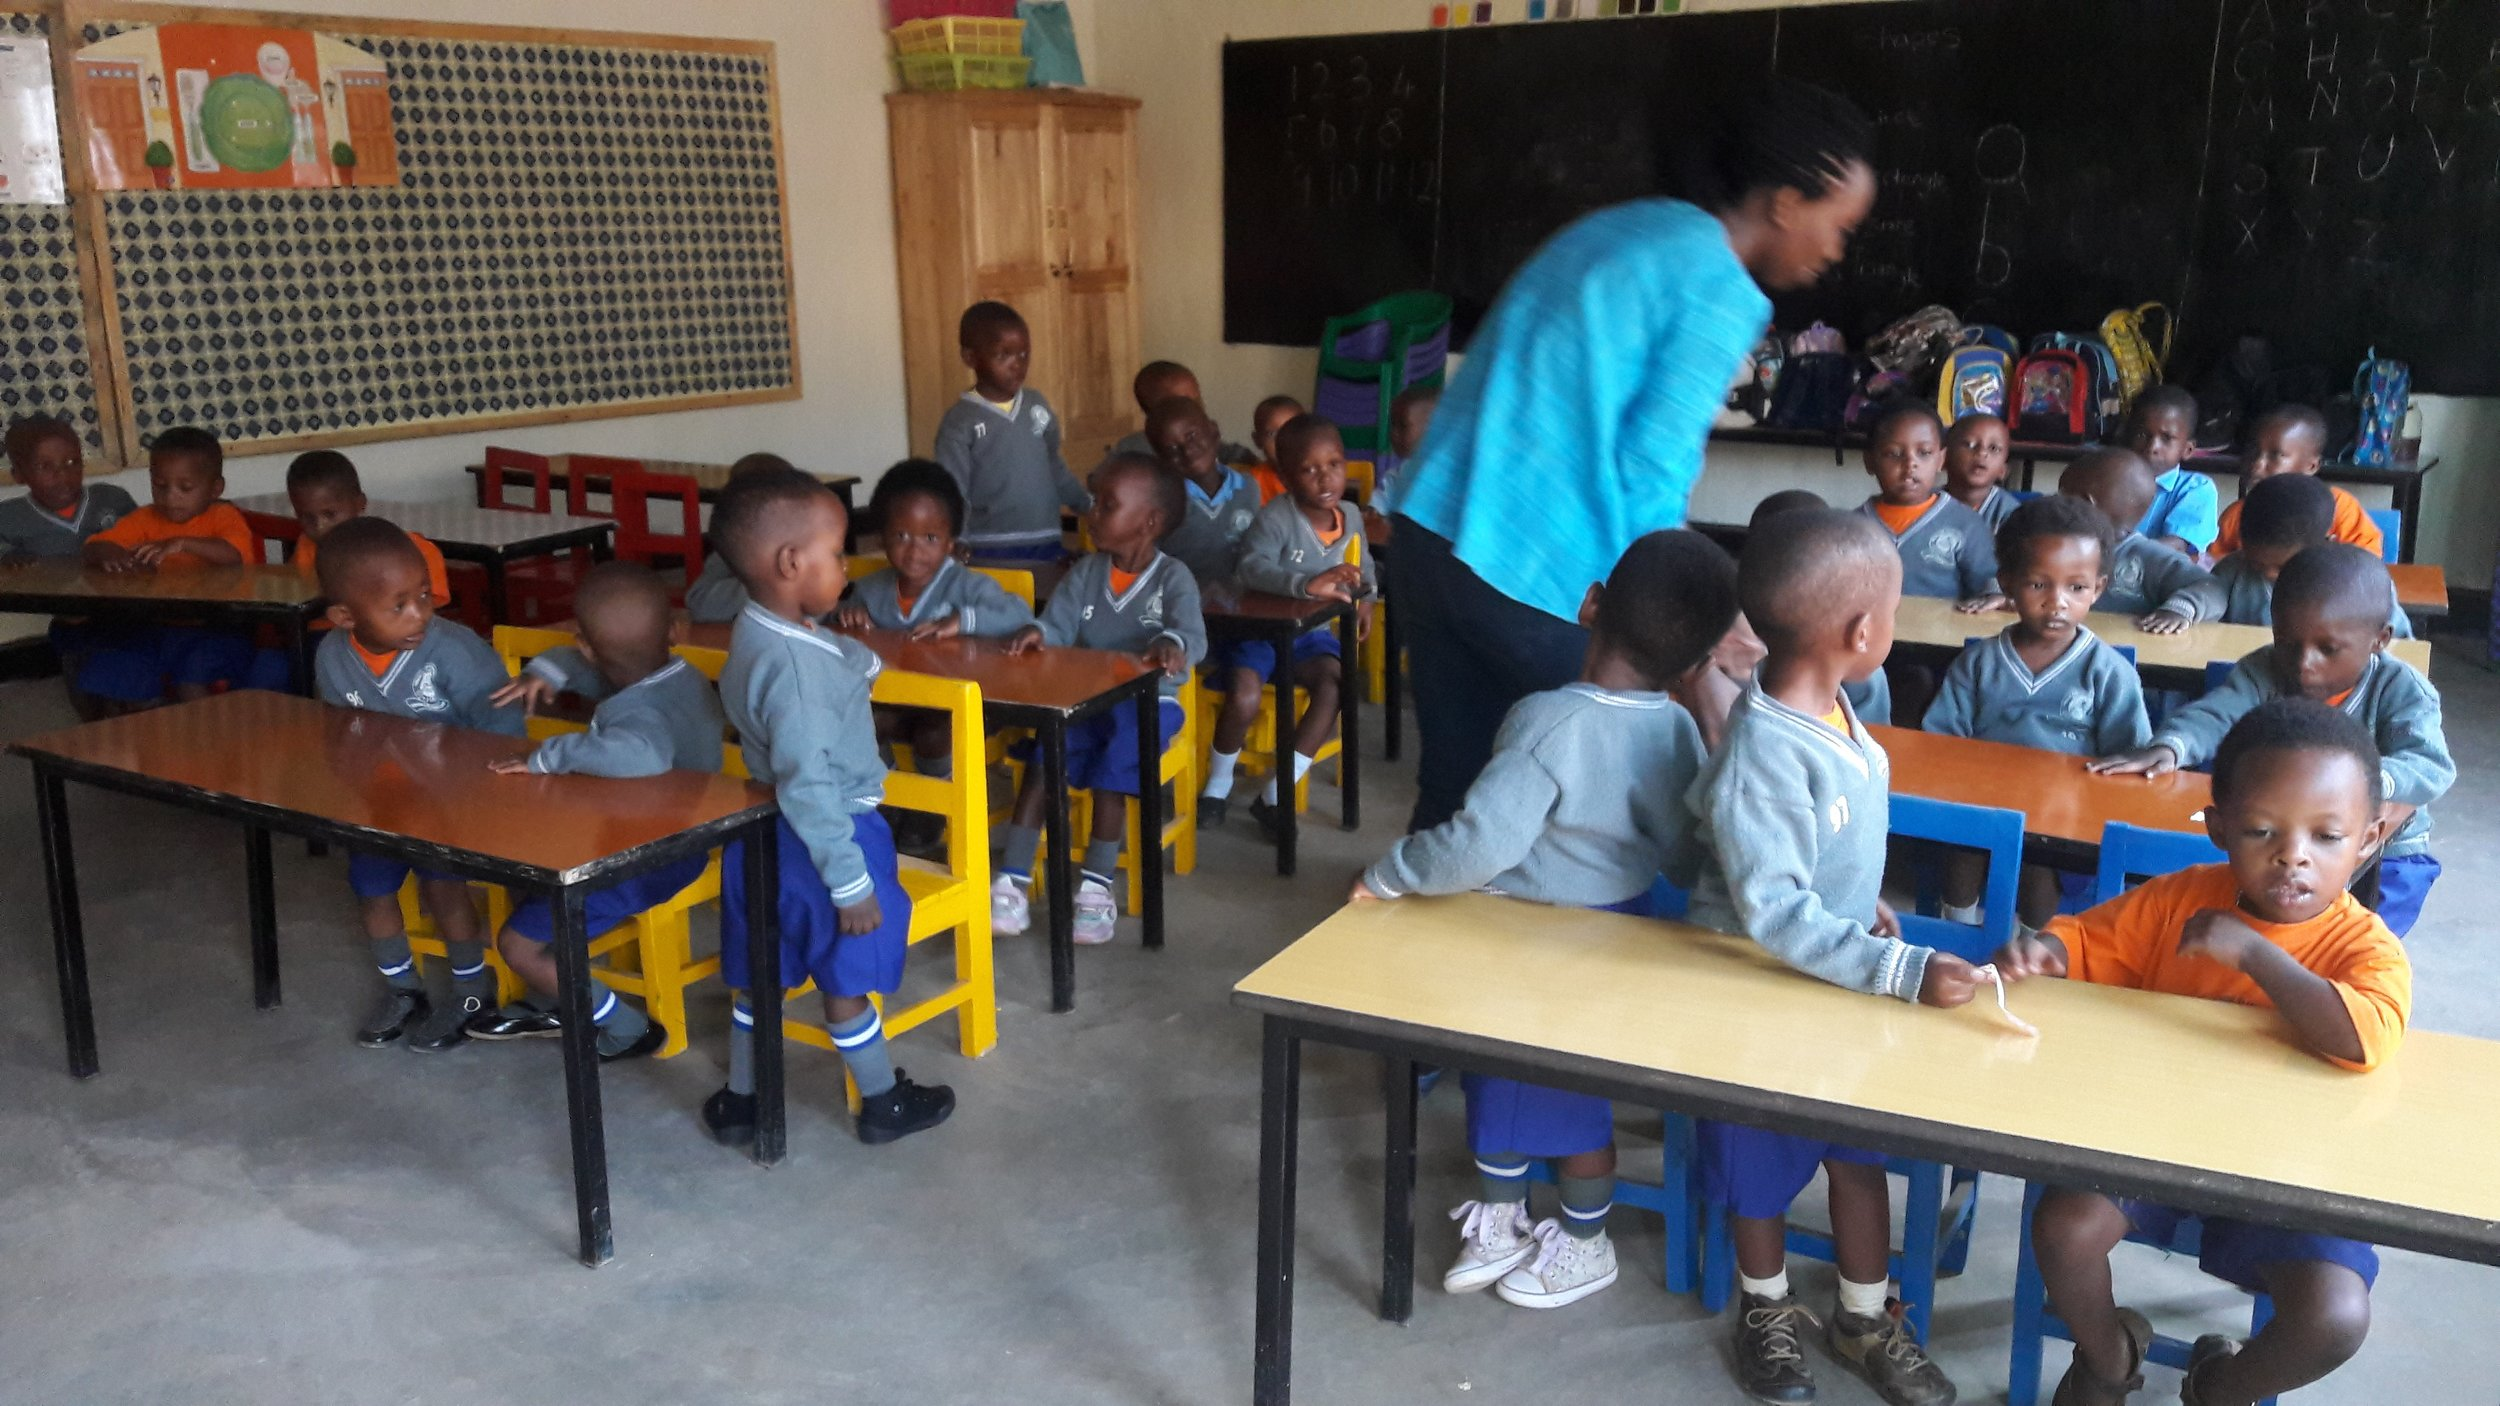 Students in class with chairs, bulletin boards and chairs